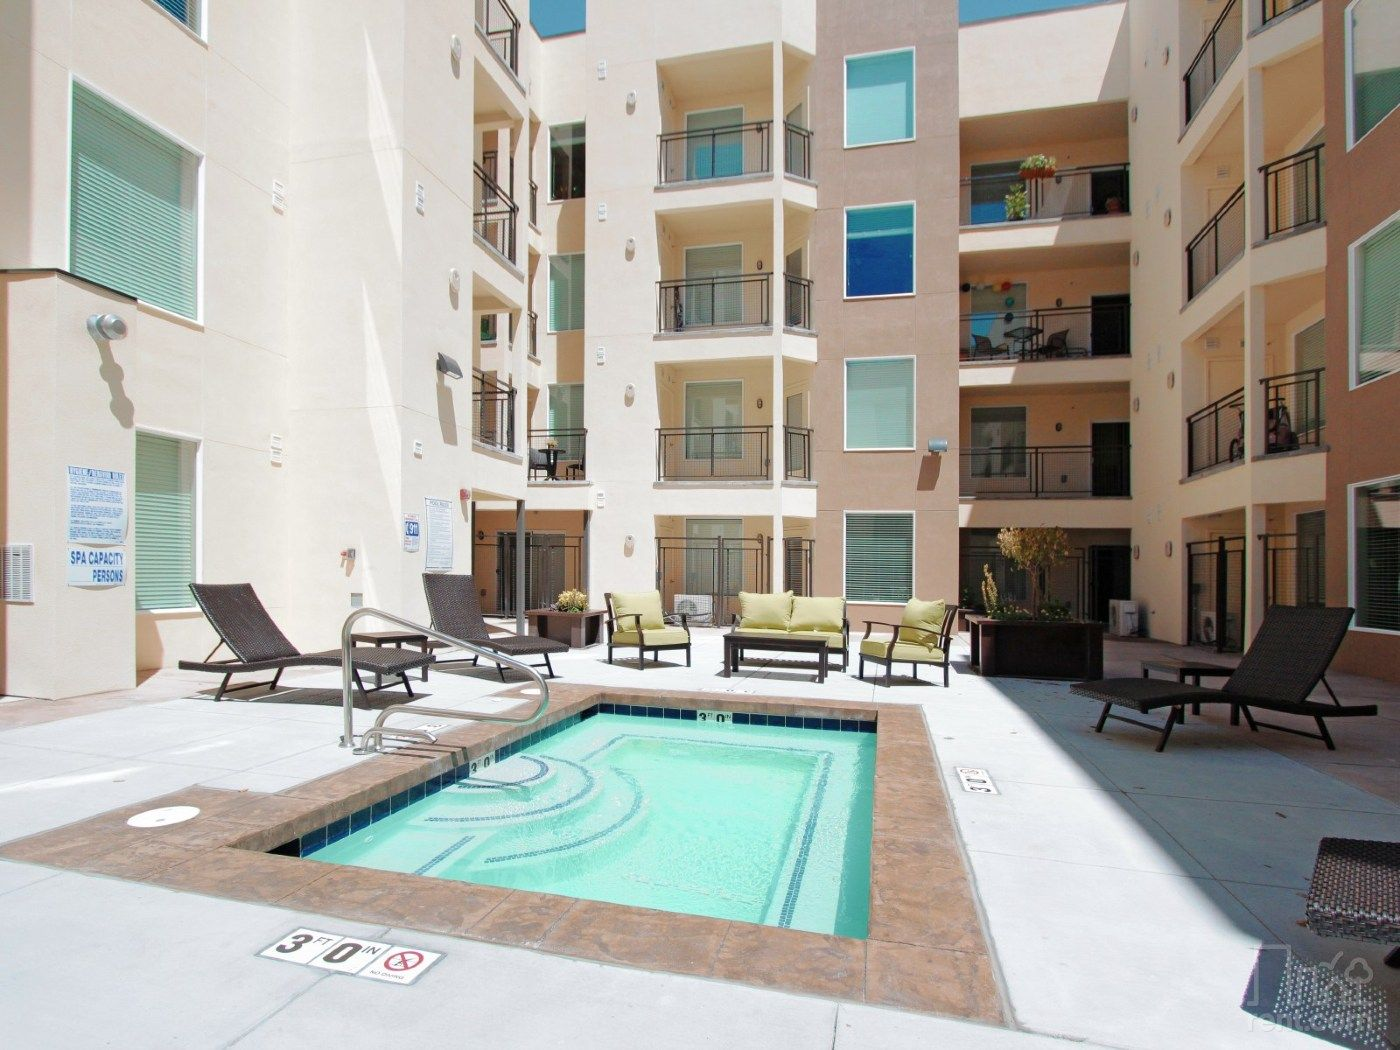 E Renting  Seasons At Library Square  East 500 South  Salt Lake City UT  Apartments For